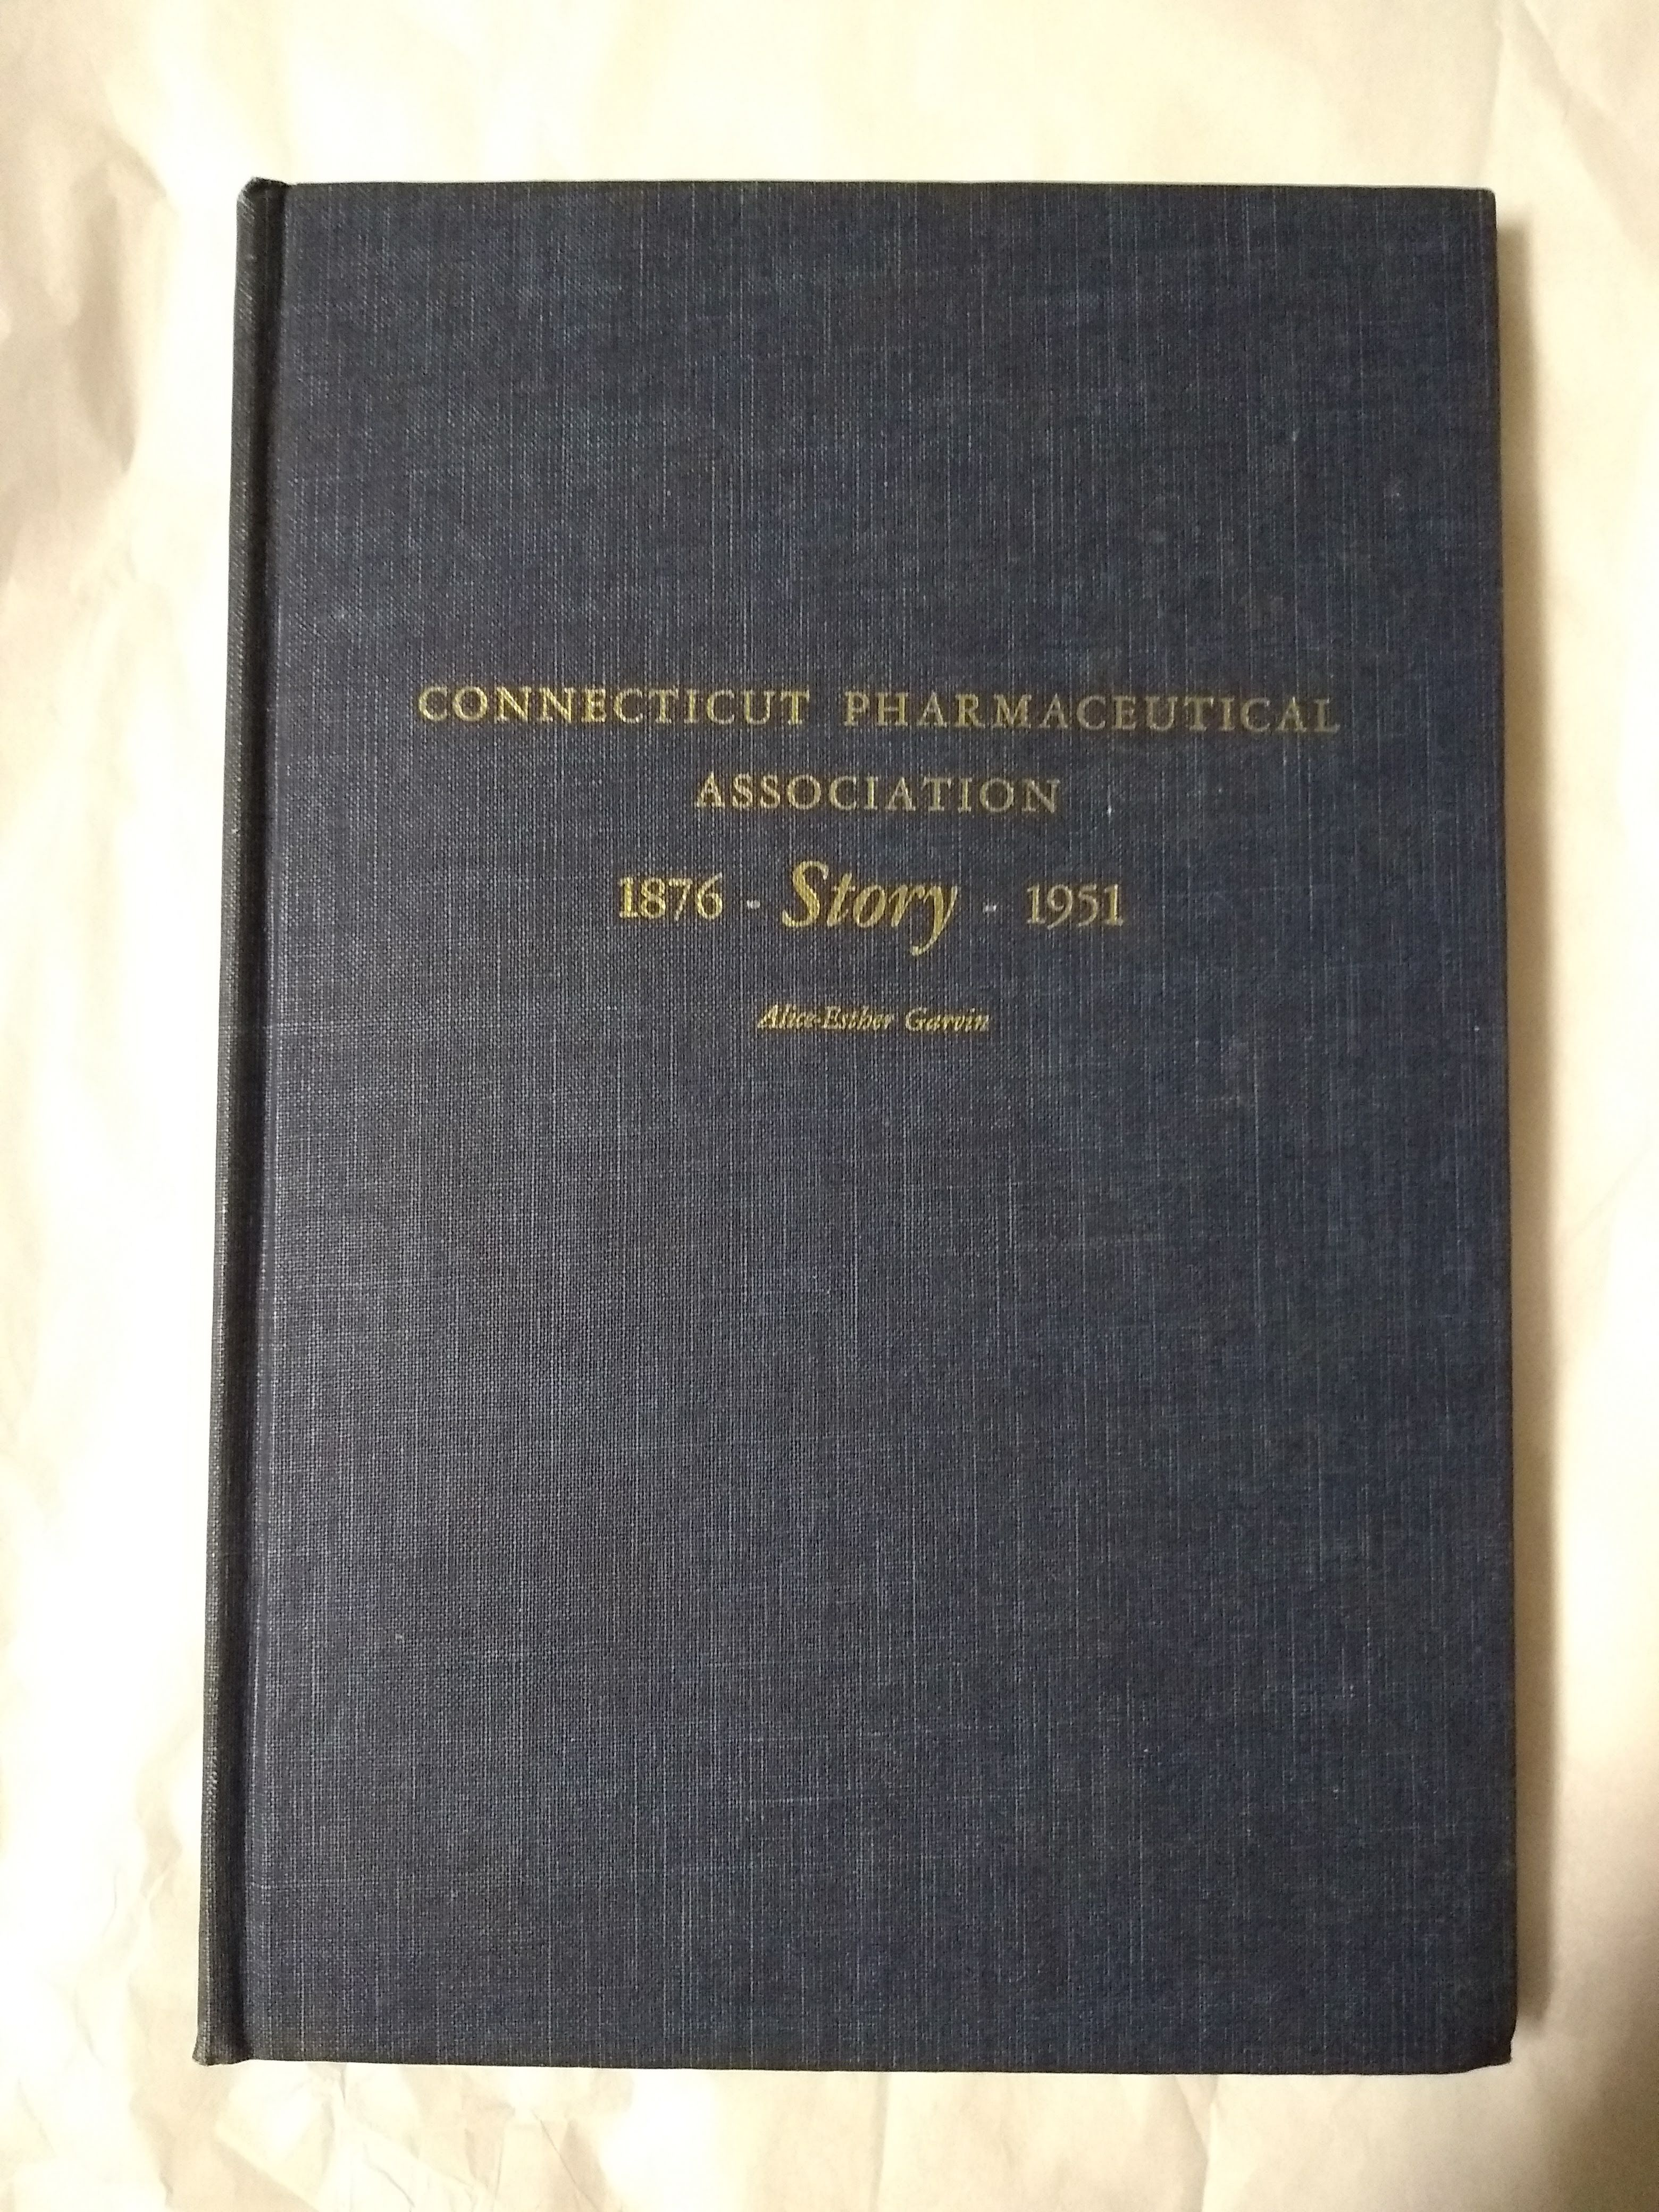 Connecticut Pharmaceutical Association Story 1876-1951, Garvin, Alice-Esther, Editor; Felix Blanc, Raymond T. McMullen, Raymond E. Mercier, Review Committee